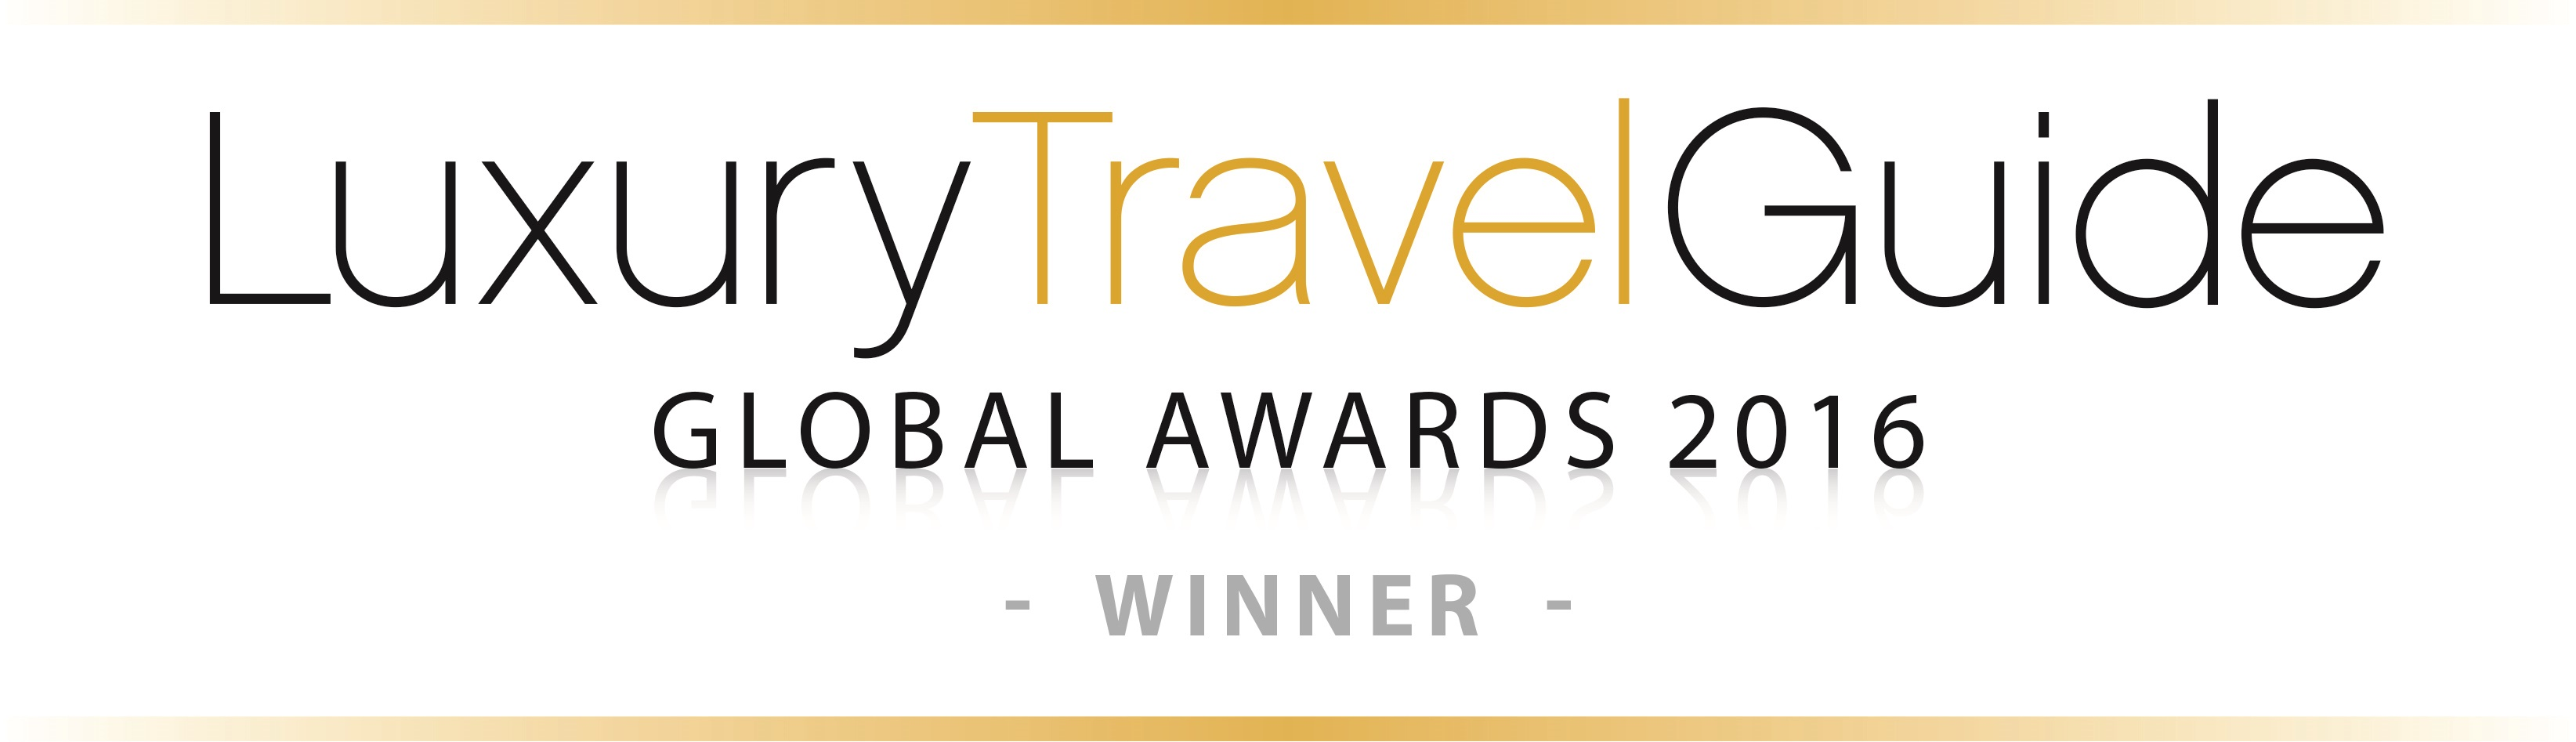 luxury travel guide winner